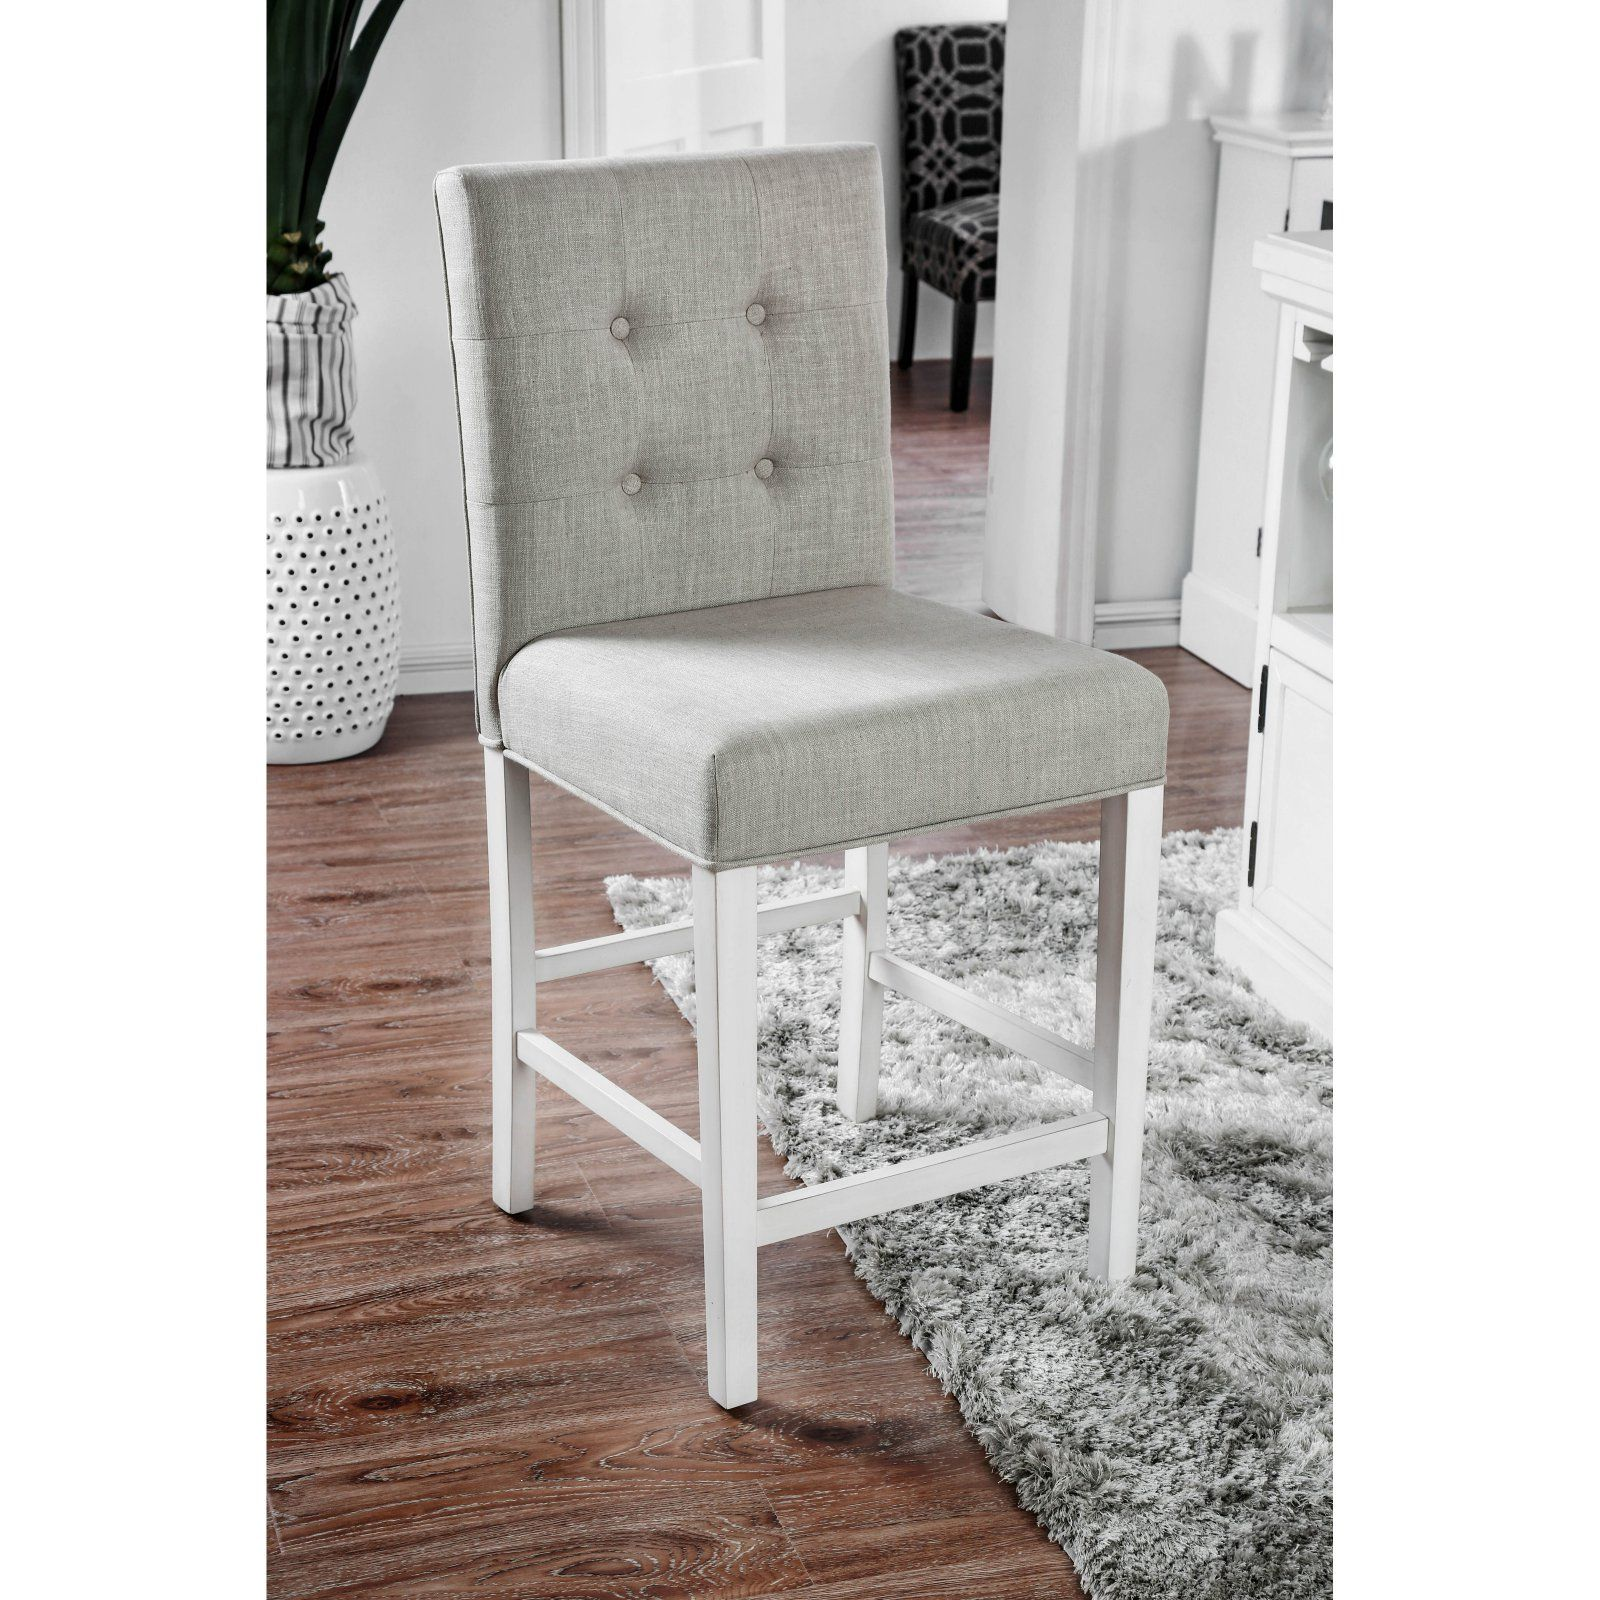 furniture of america alana button tufted counter height chairs set rh pinterest com